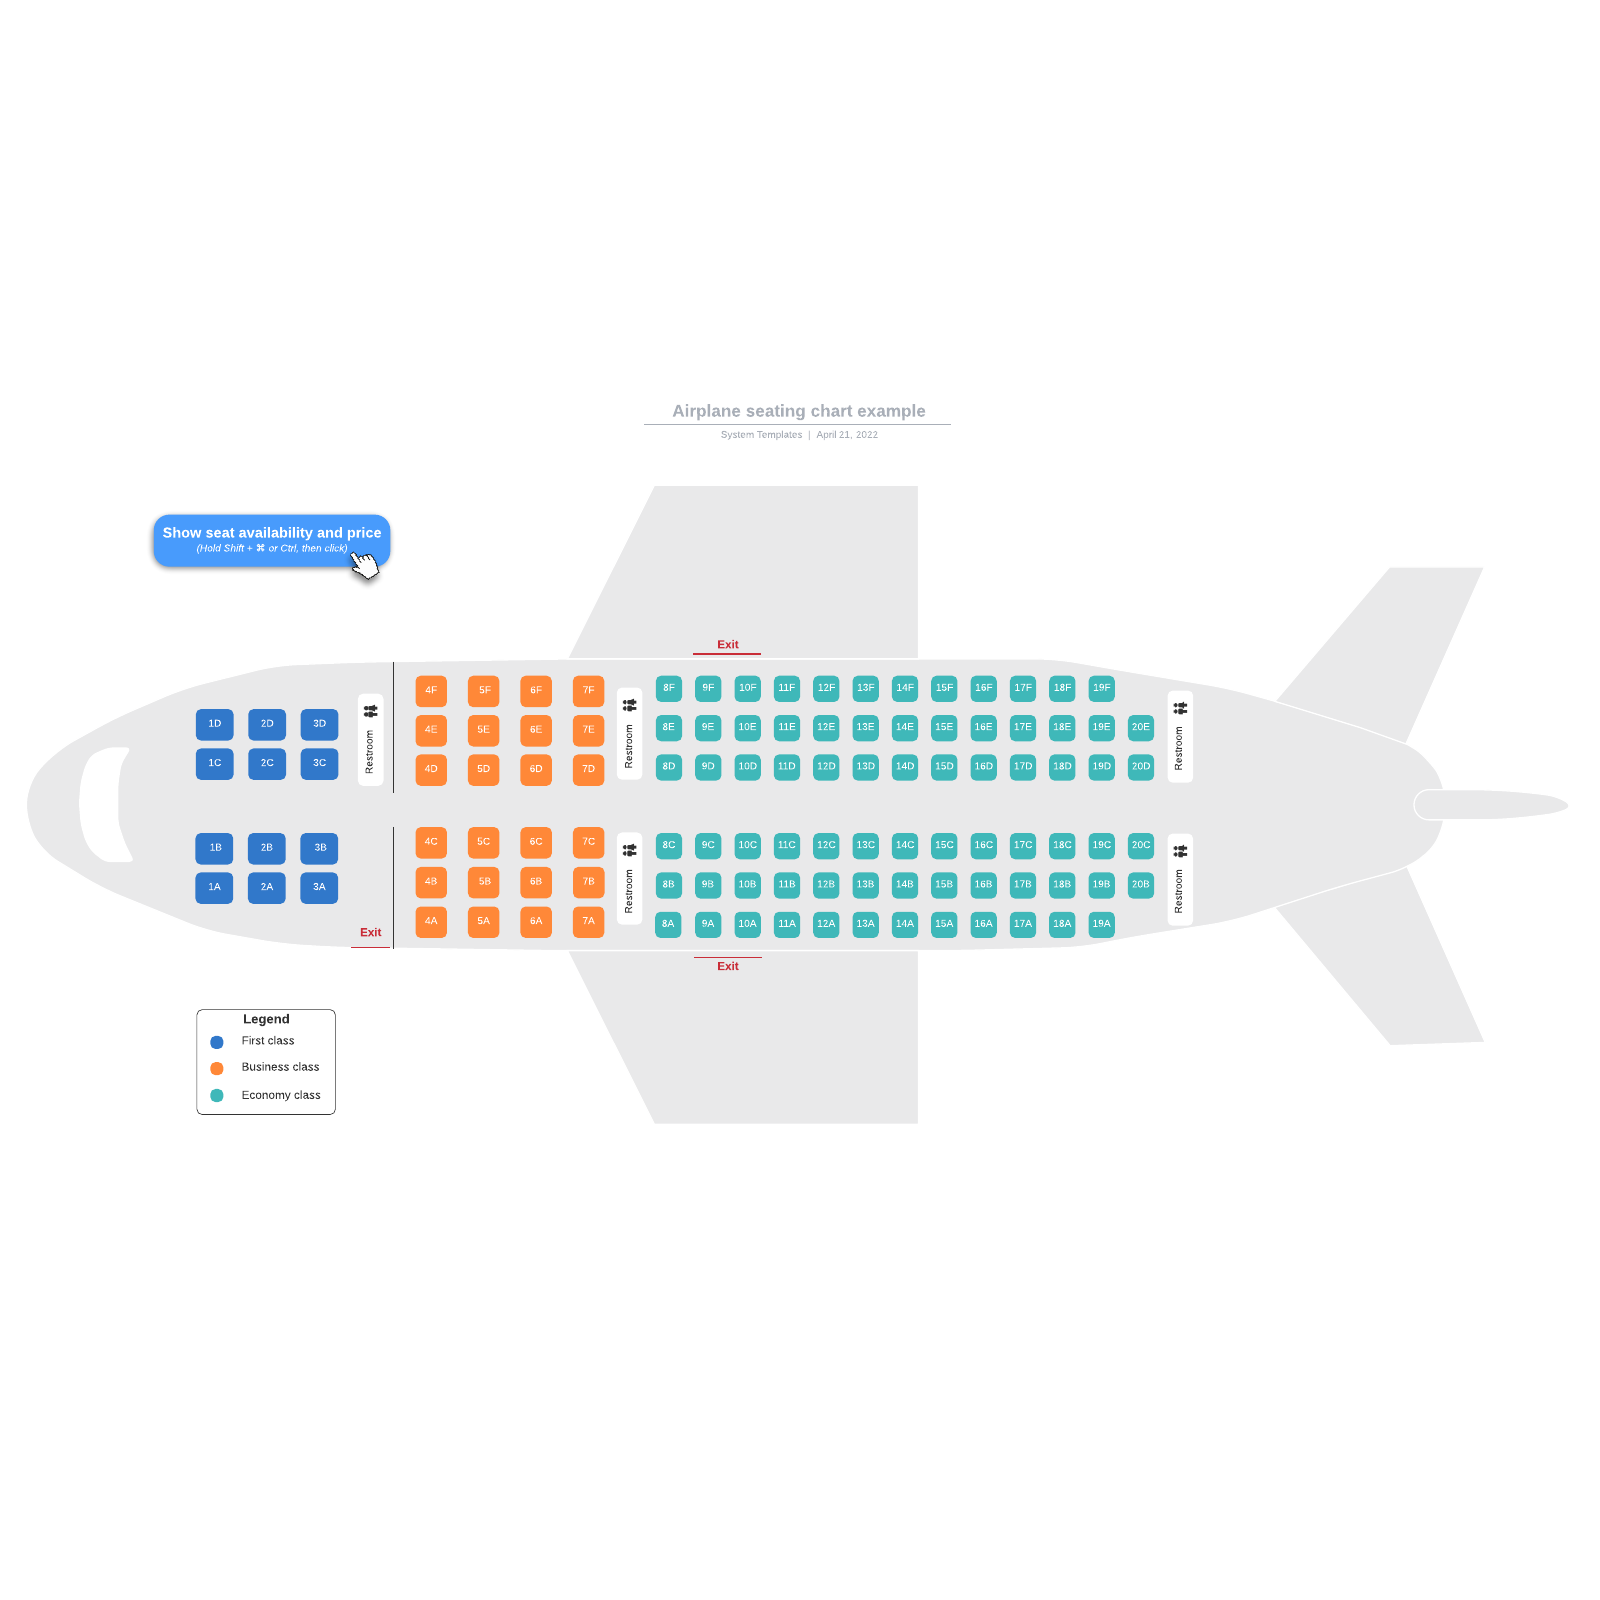 Airplane seating chart example